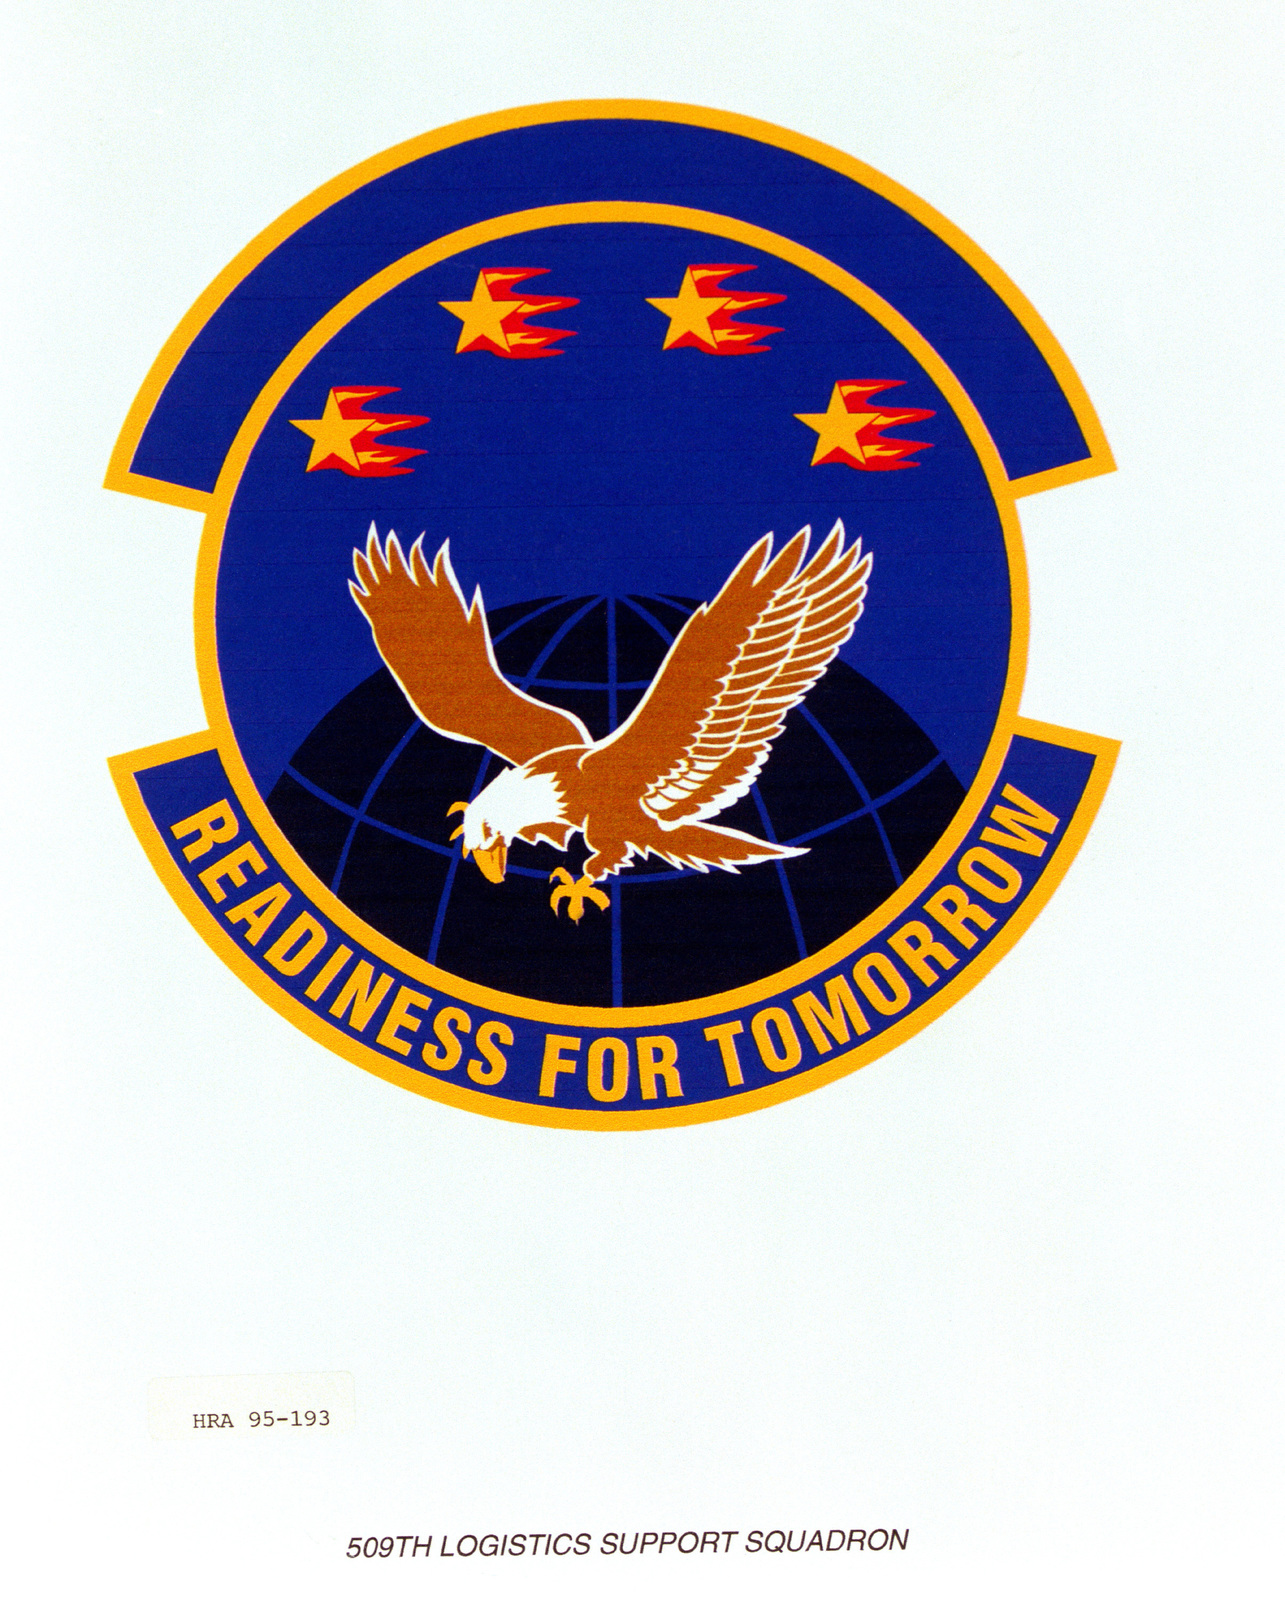 Approved Insignia for the 509th Logistics Support Squadron. Exact Date Shot Unknown